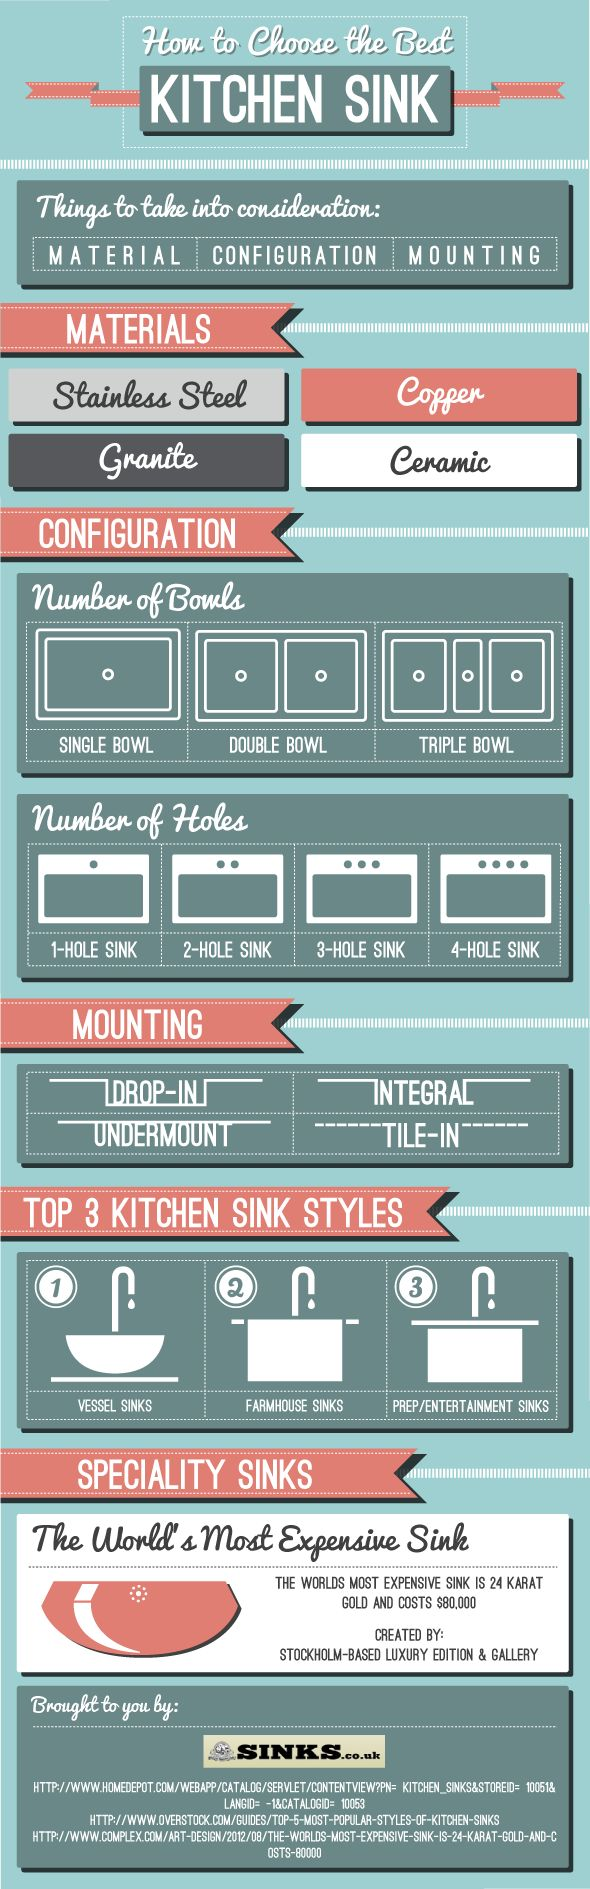 24 best Kitchens images on Pinterest | Future house, Home ideas and ...